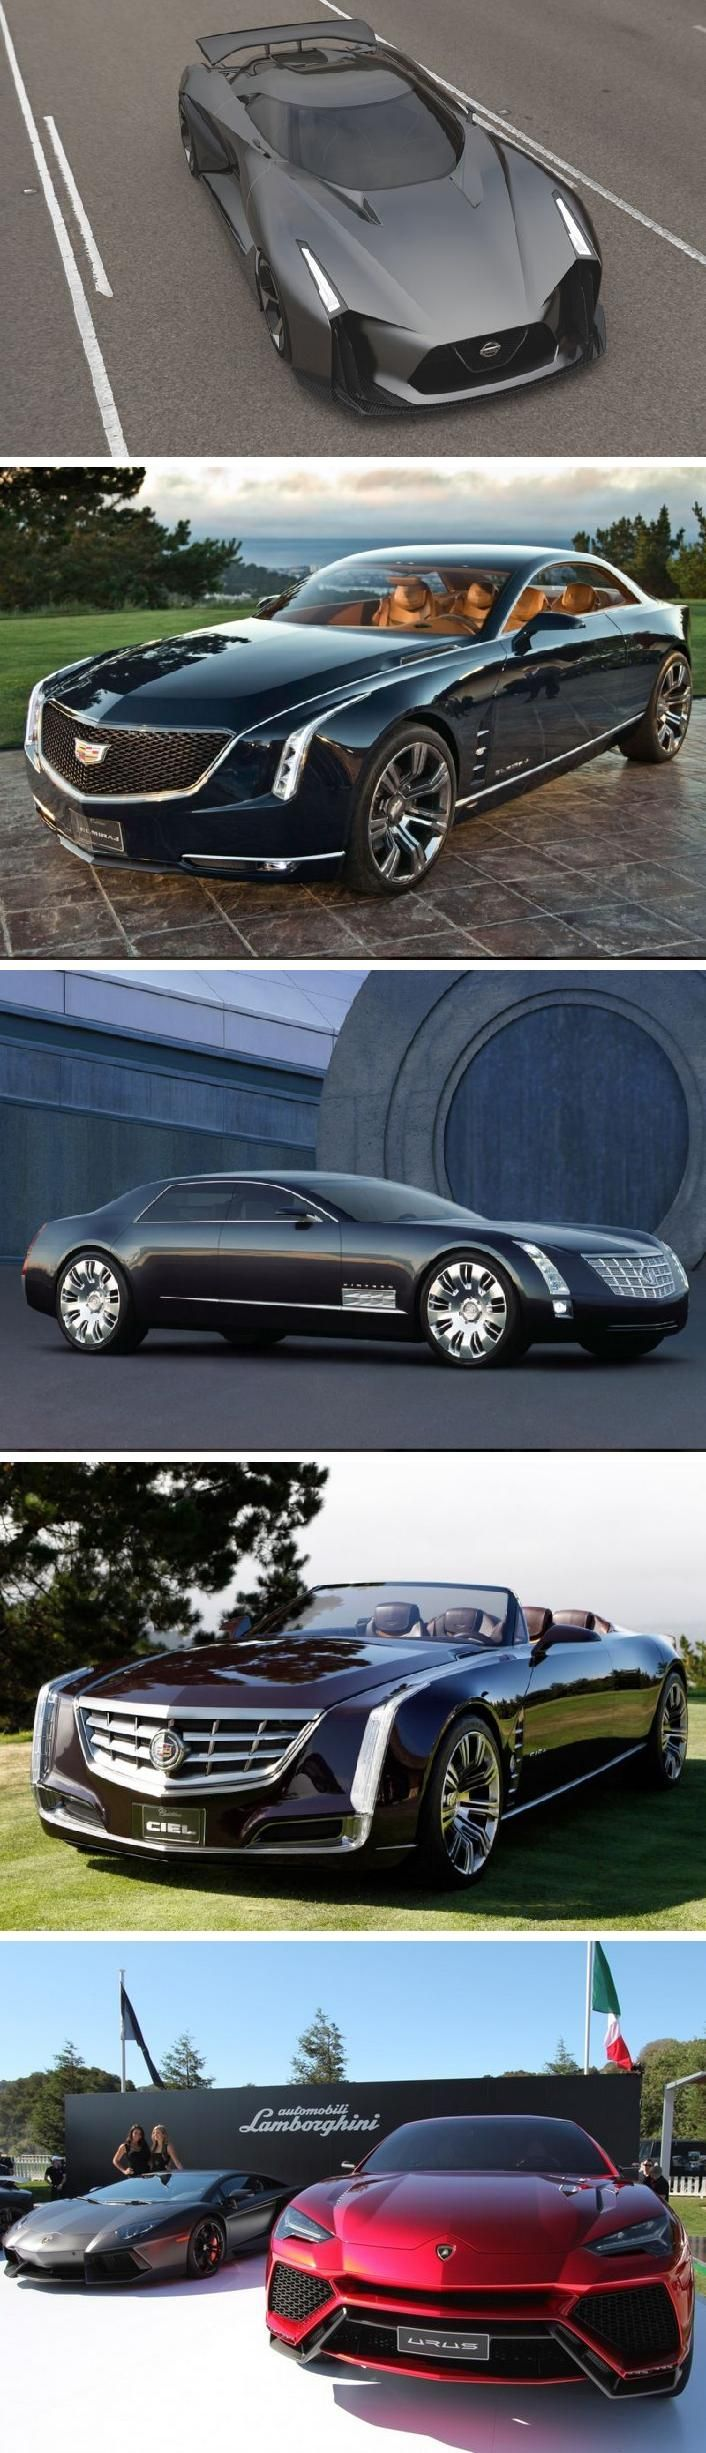 10 Breathtaking Cars We're Tired Of Waiting For. Click if you've had enough too.... #concepts #spon